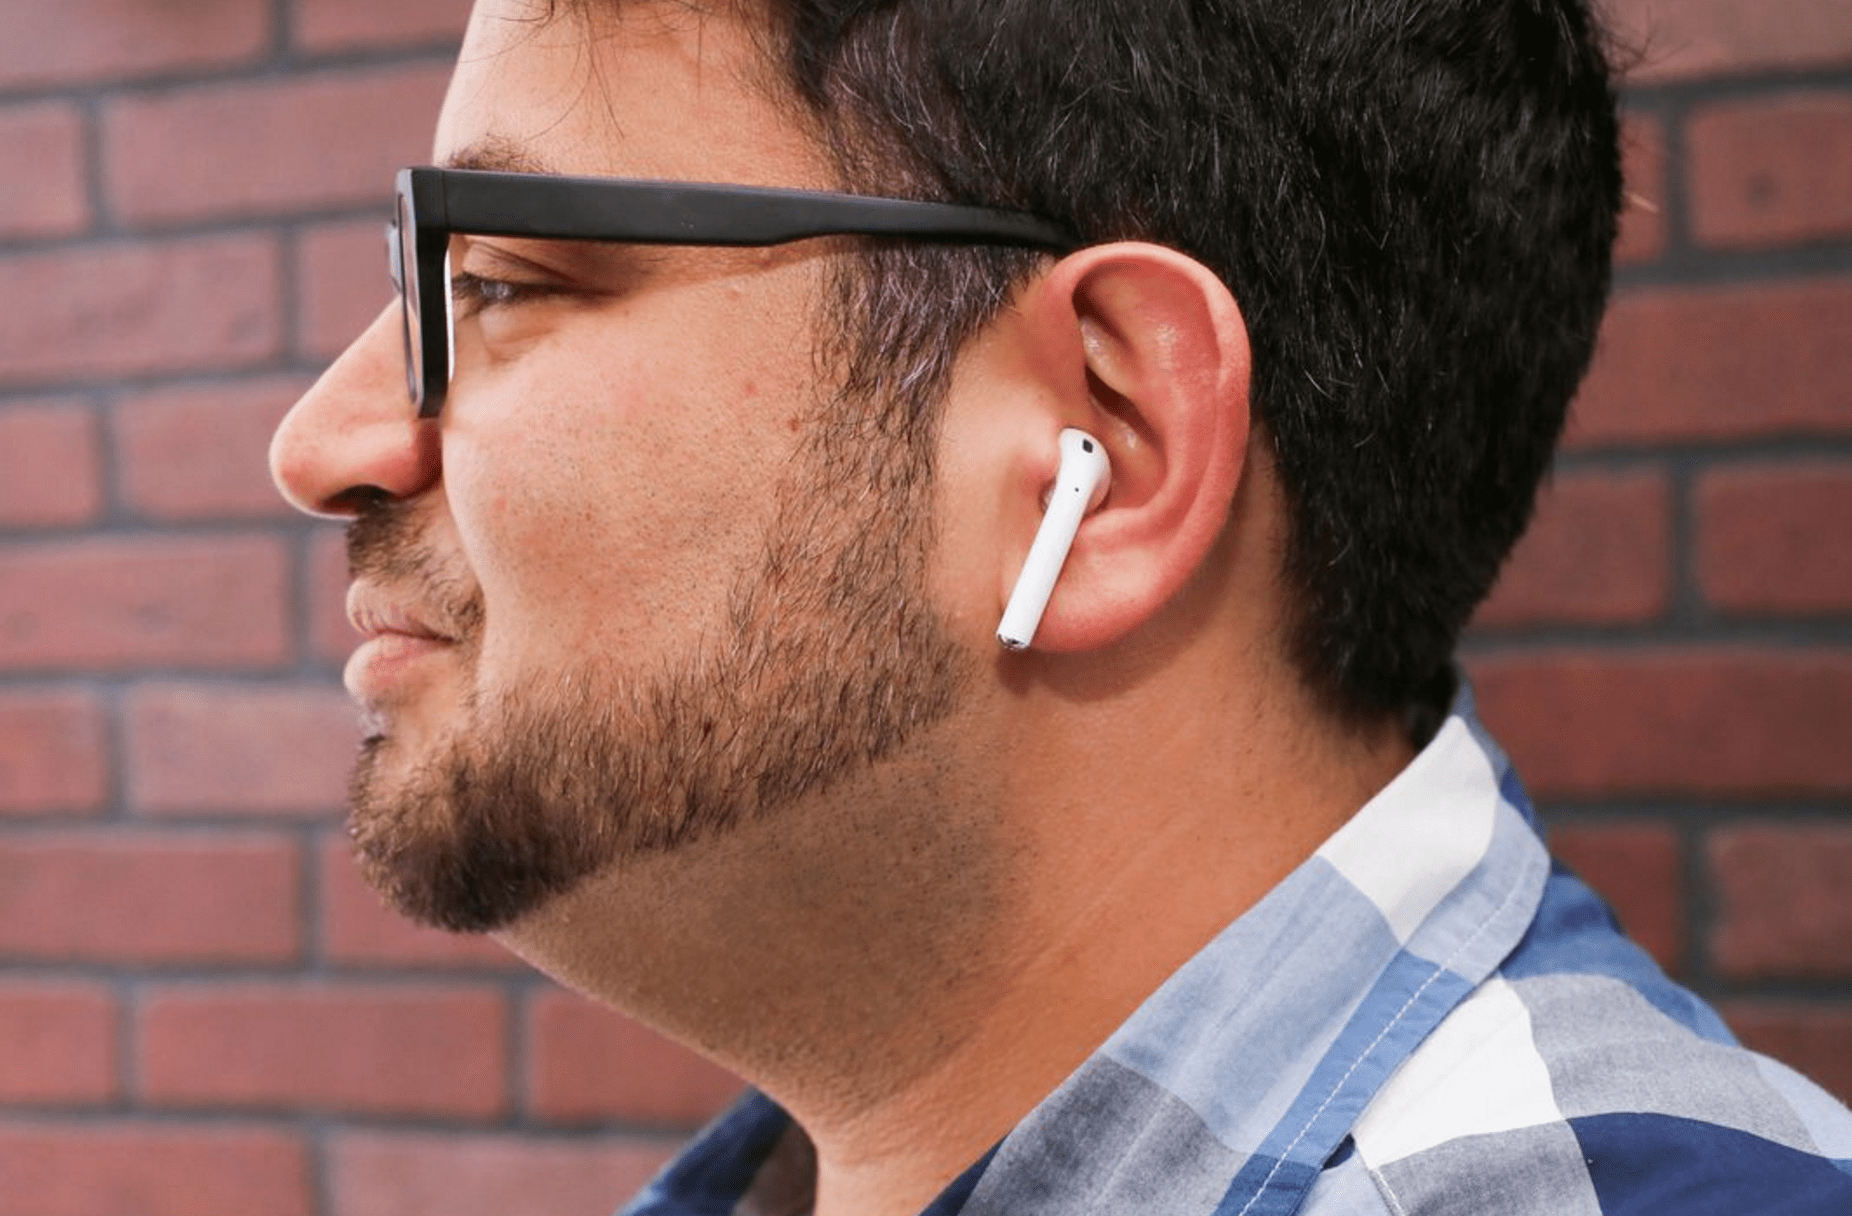 Apple AirPods aren't ridiculous says CNET, we disagree [Photos]